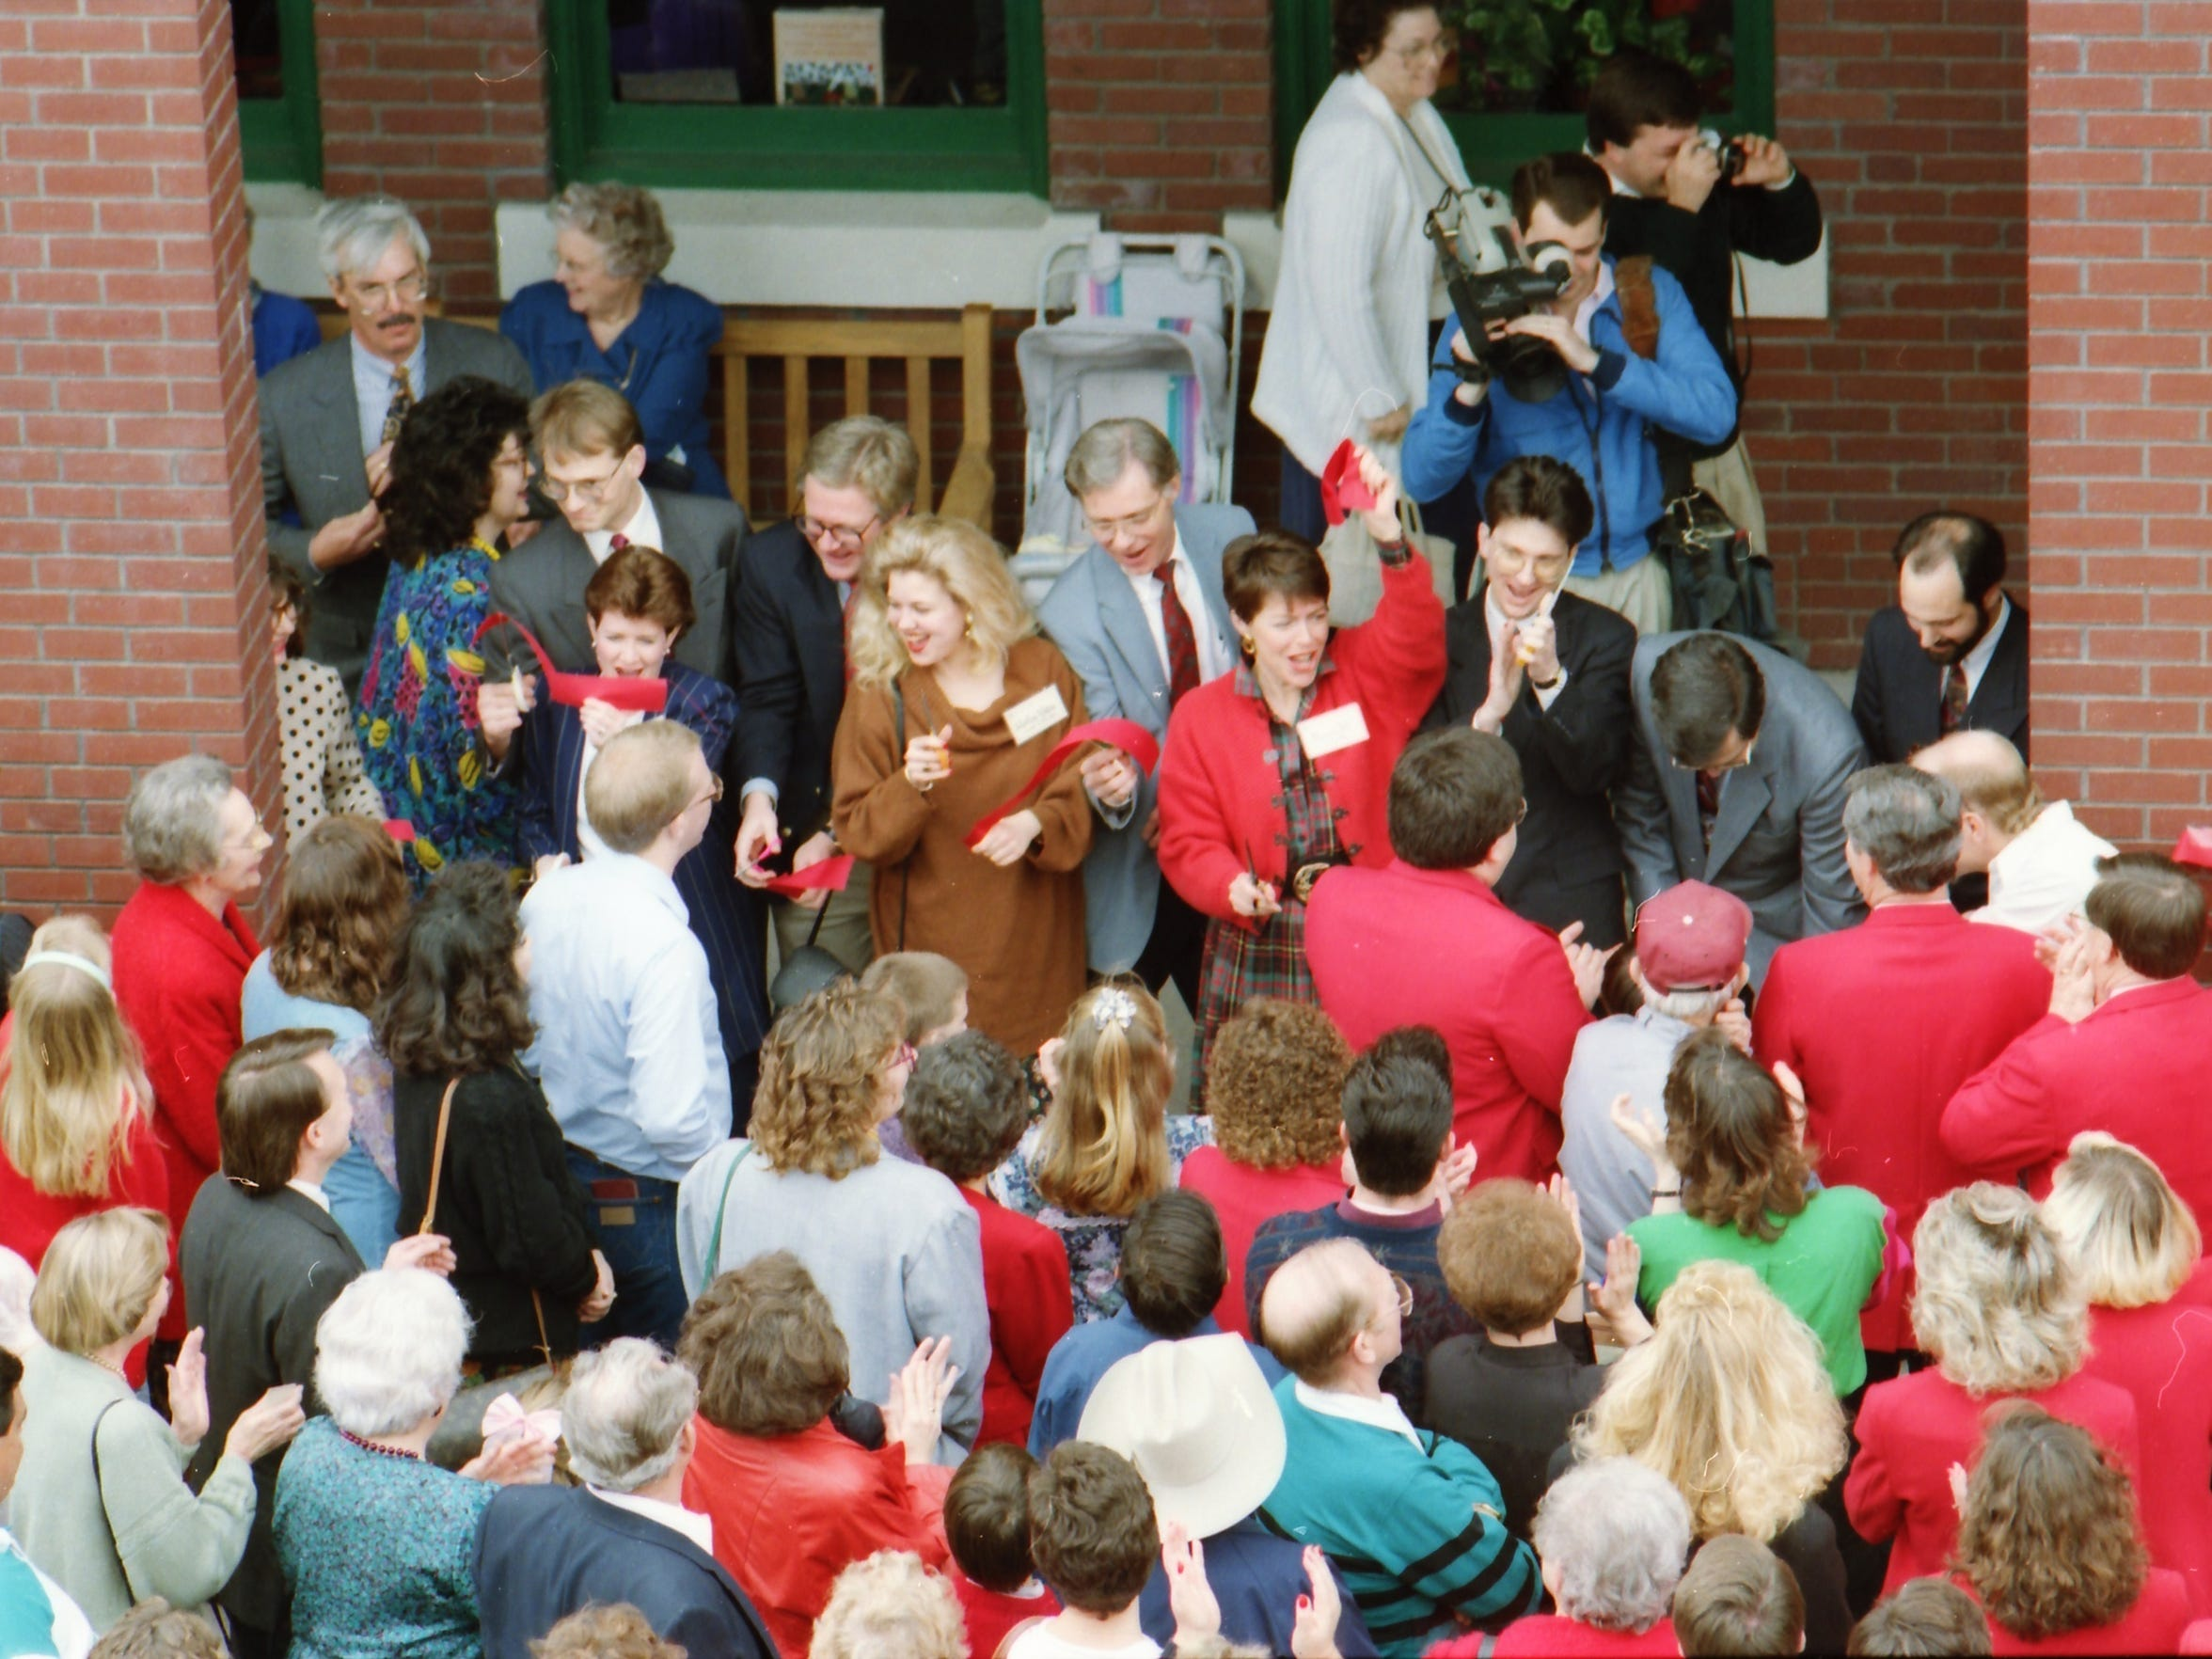 The ribbon is cut to open what would be named The Grace Museum in downtown Abilene in February 1992. Board president Bob Nutt can be seen in the dark suit near the center of the photograph.